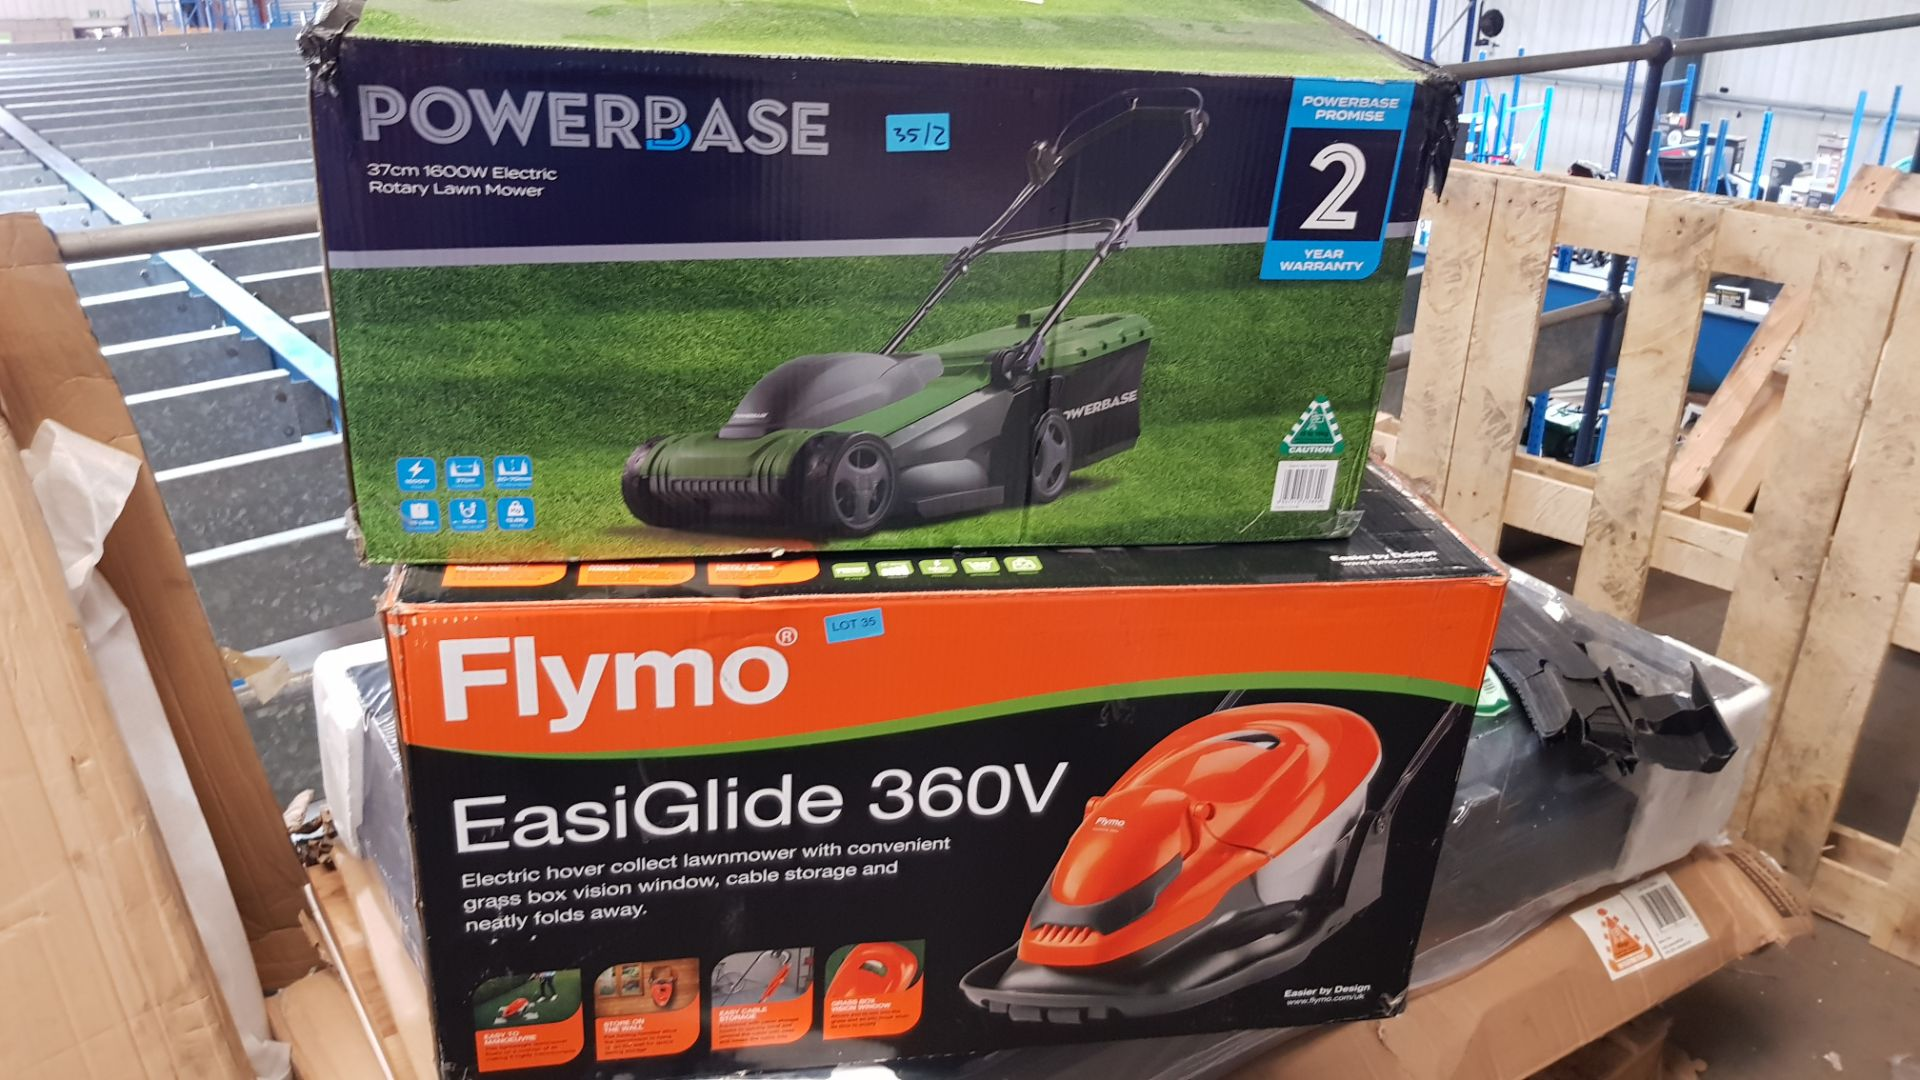 (P10) 2x Items. 1x Flymo EasiGlide 360V Electric Hover Collect Lawnmower RRP £139. 1x Powerbase 37 - Image 3 of 3